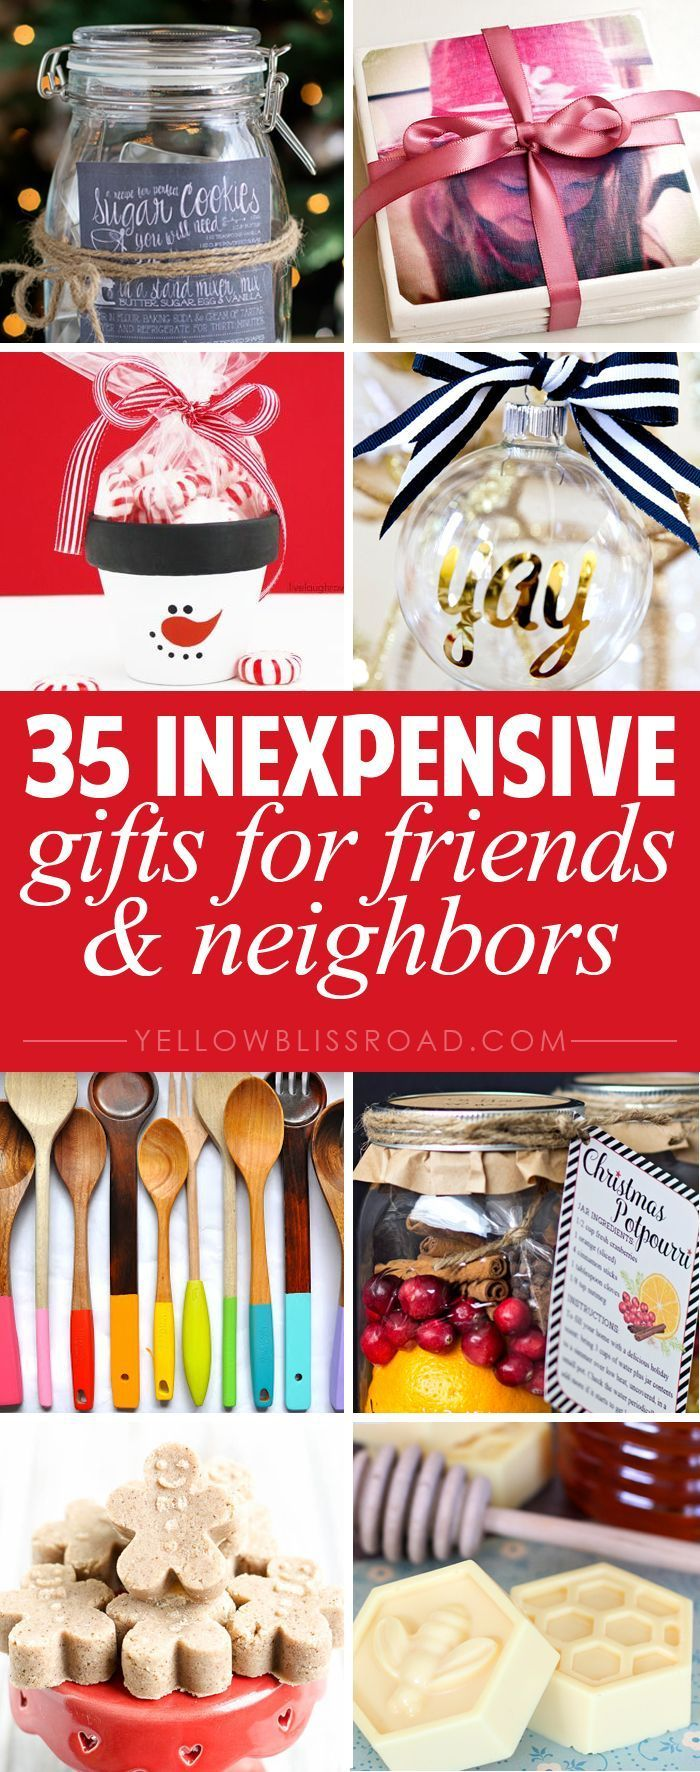 35 Gift Ideas for Neighbors and Friends | YellowBlissRoad.com